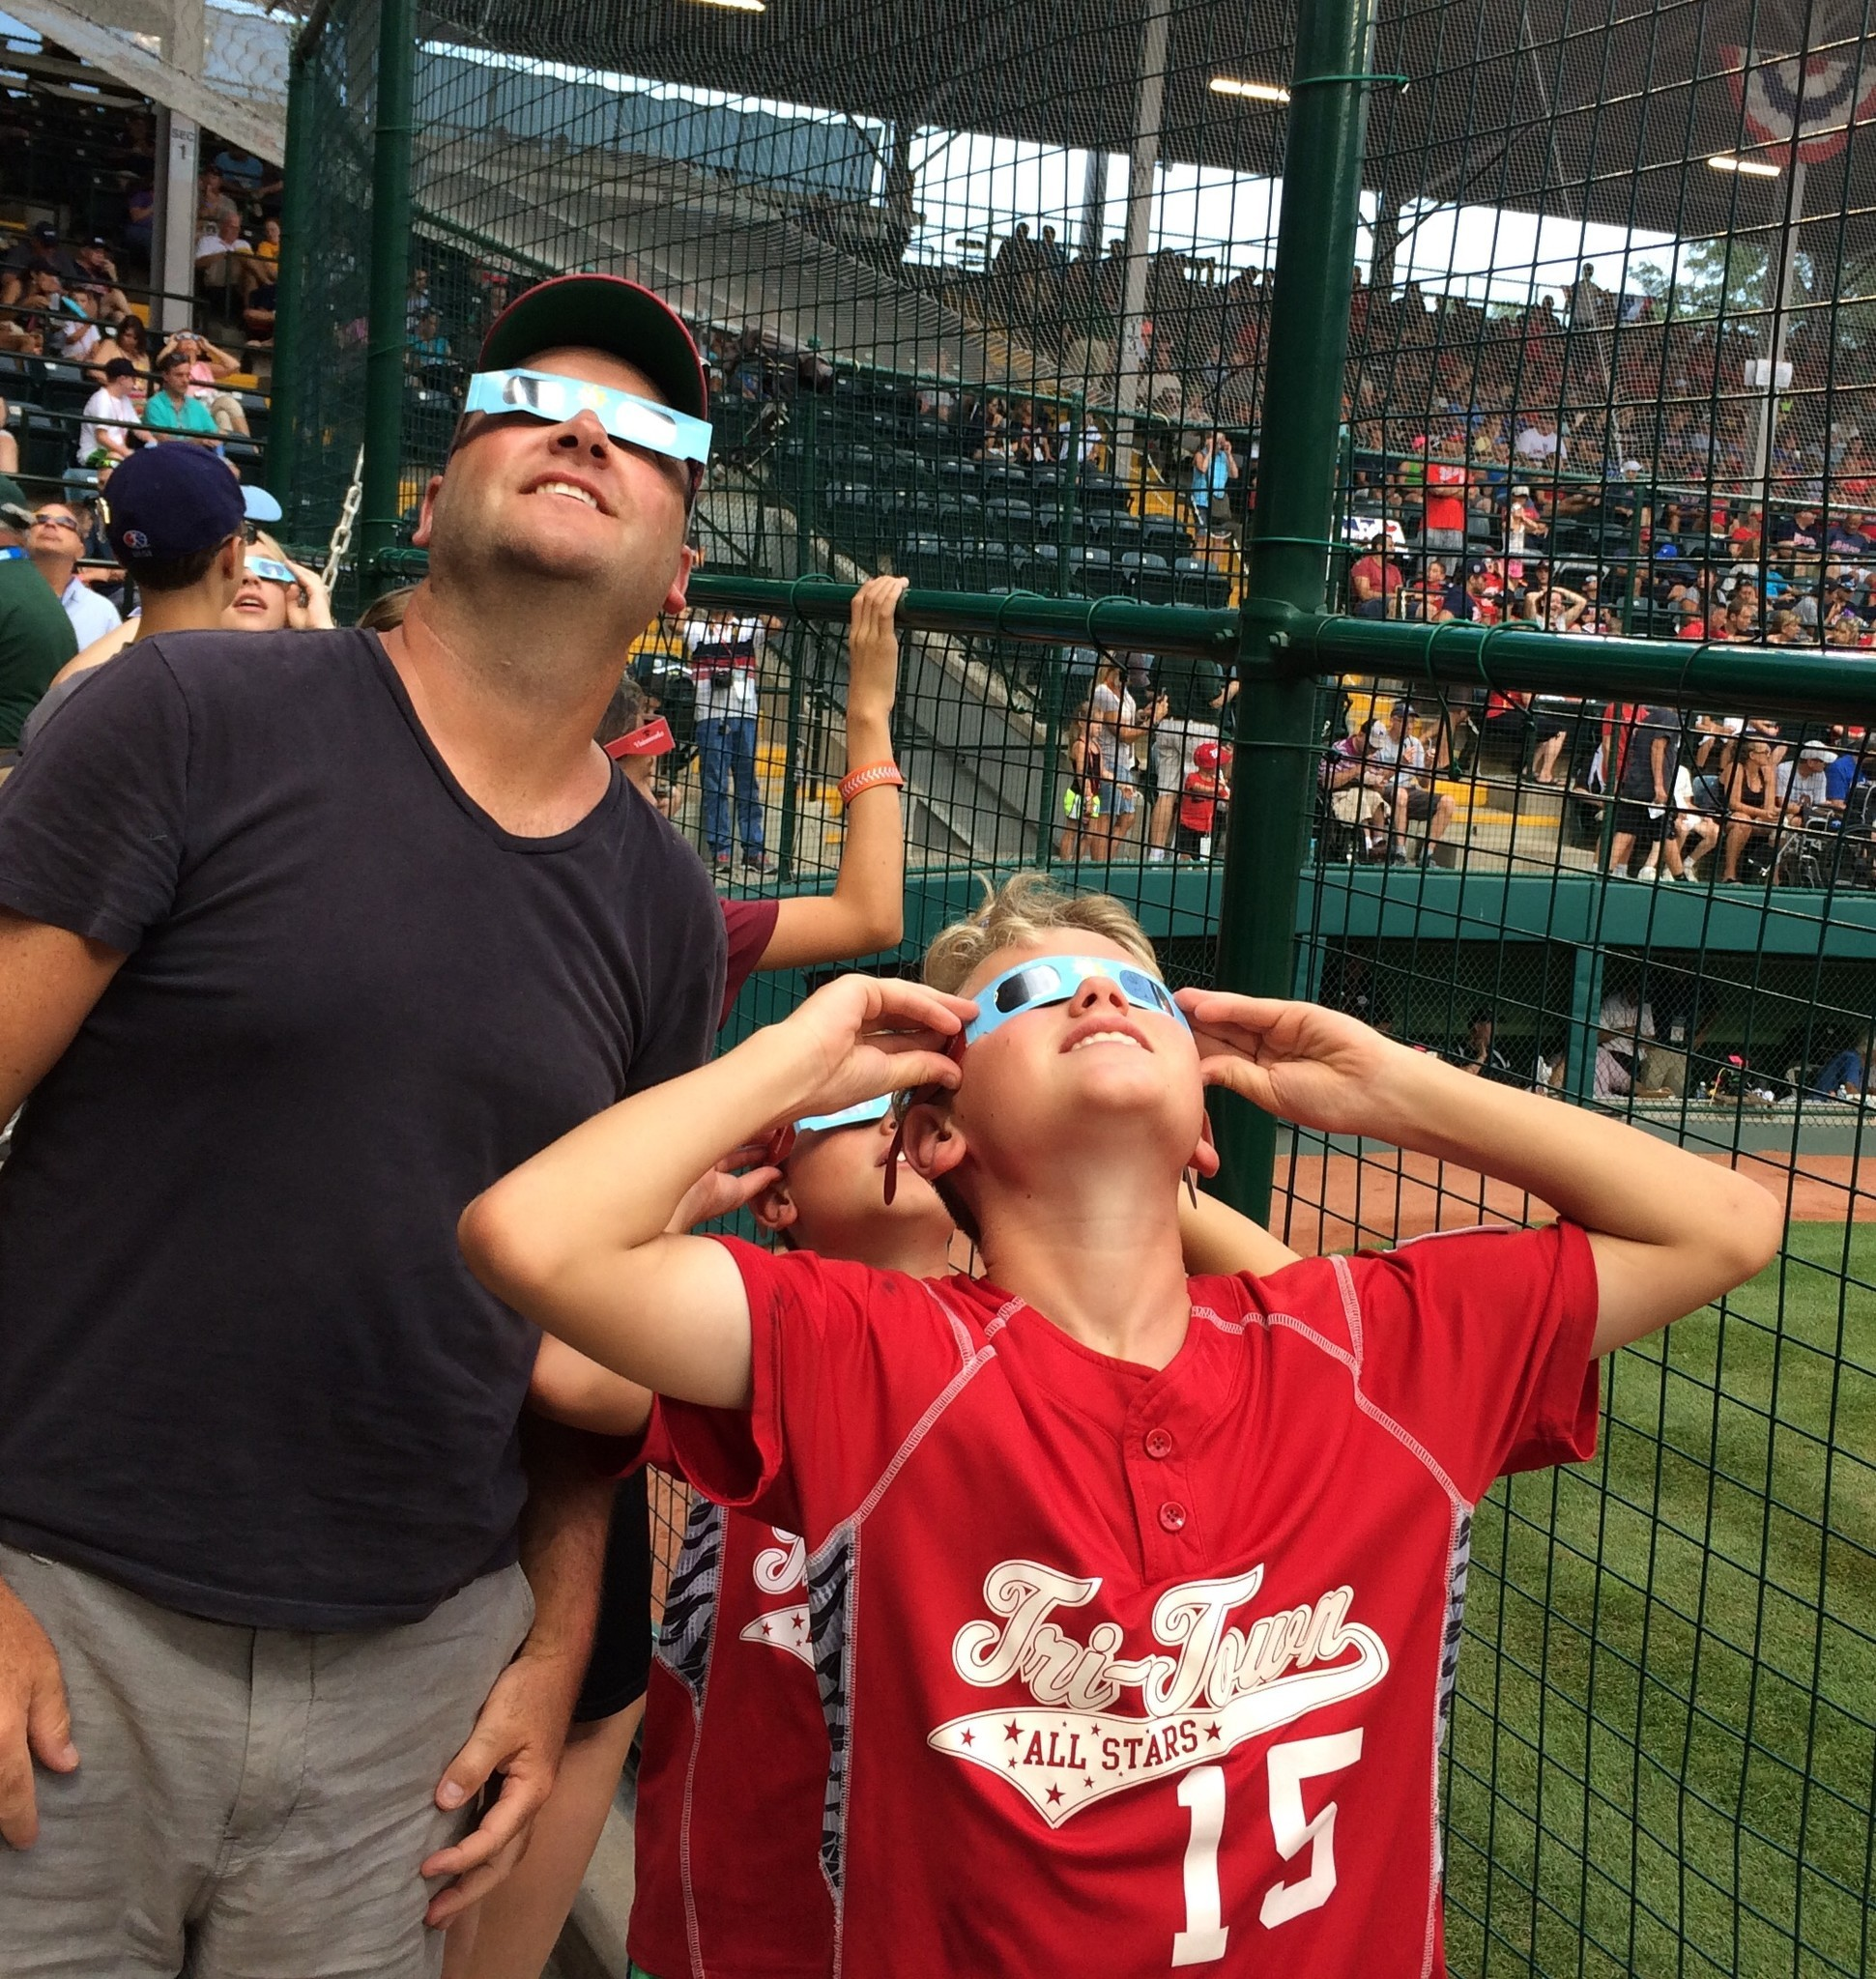 Mike Wenzel and sons Kyke and A.J. of New Jersey check out the solar eclipse between games at the Little League World Series in South Williamsport, Pa. on Monday. (Kevin Baxter / Los Angeles Times)